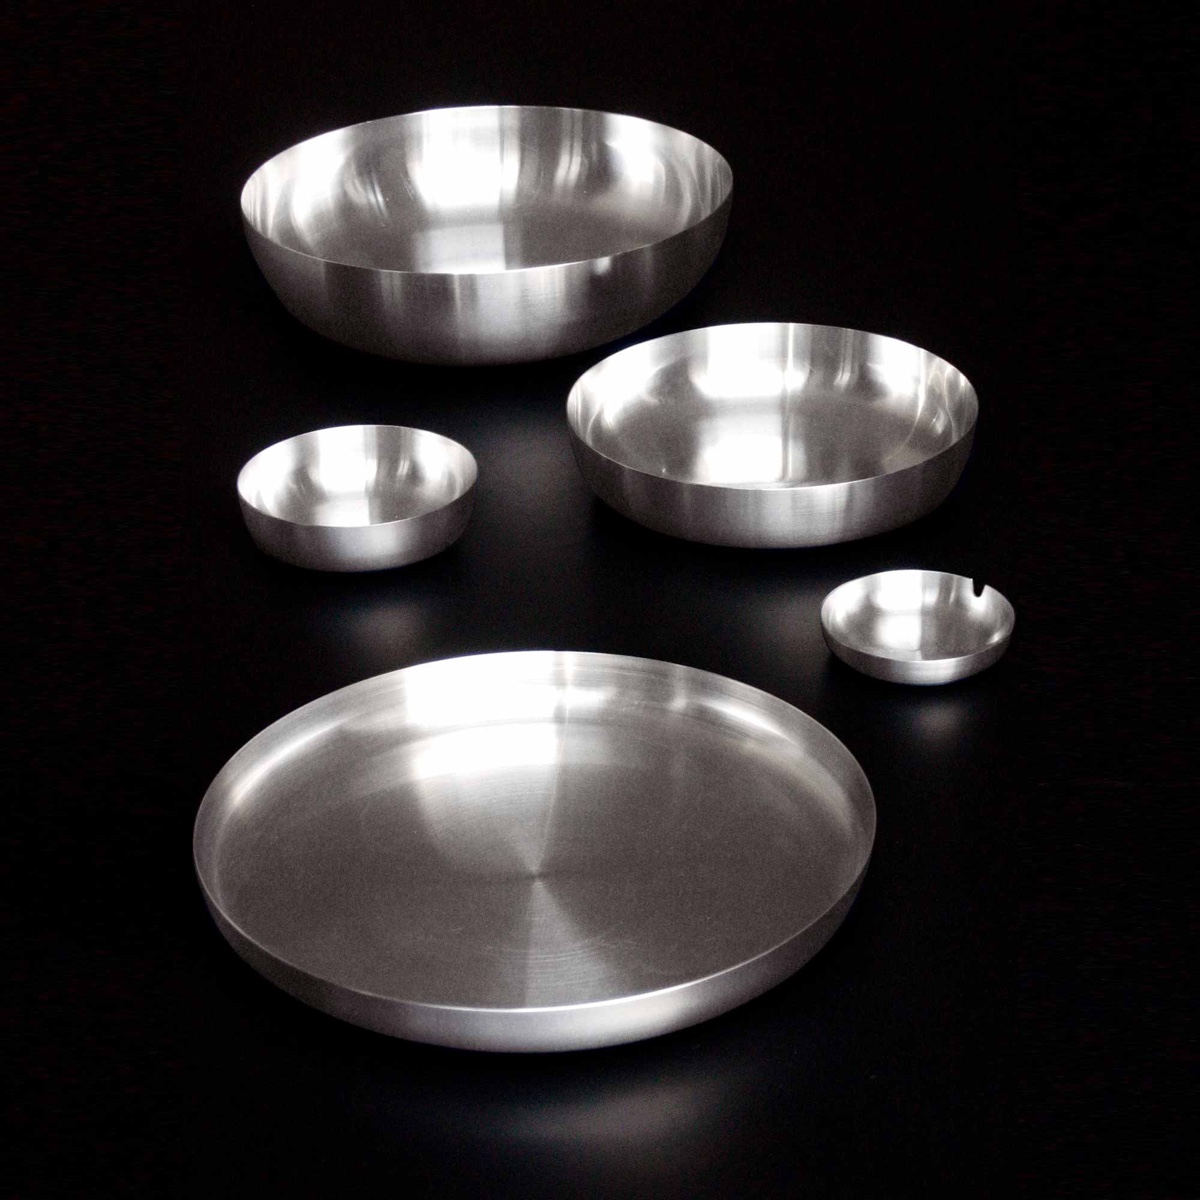 Tray Family (2001). A range of spun stainless-steel trays, bowls and an ashtray, designed for Alessi.